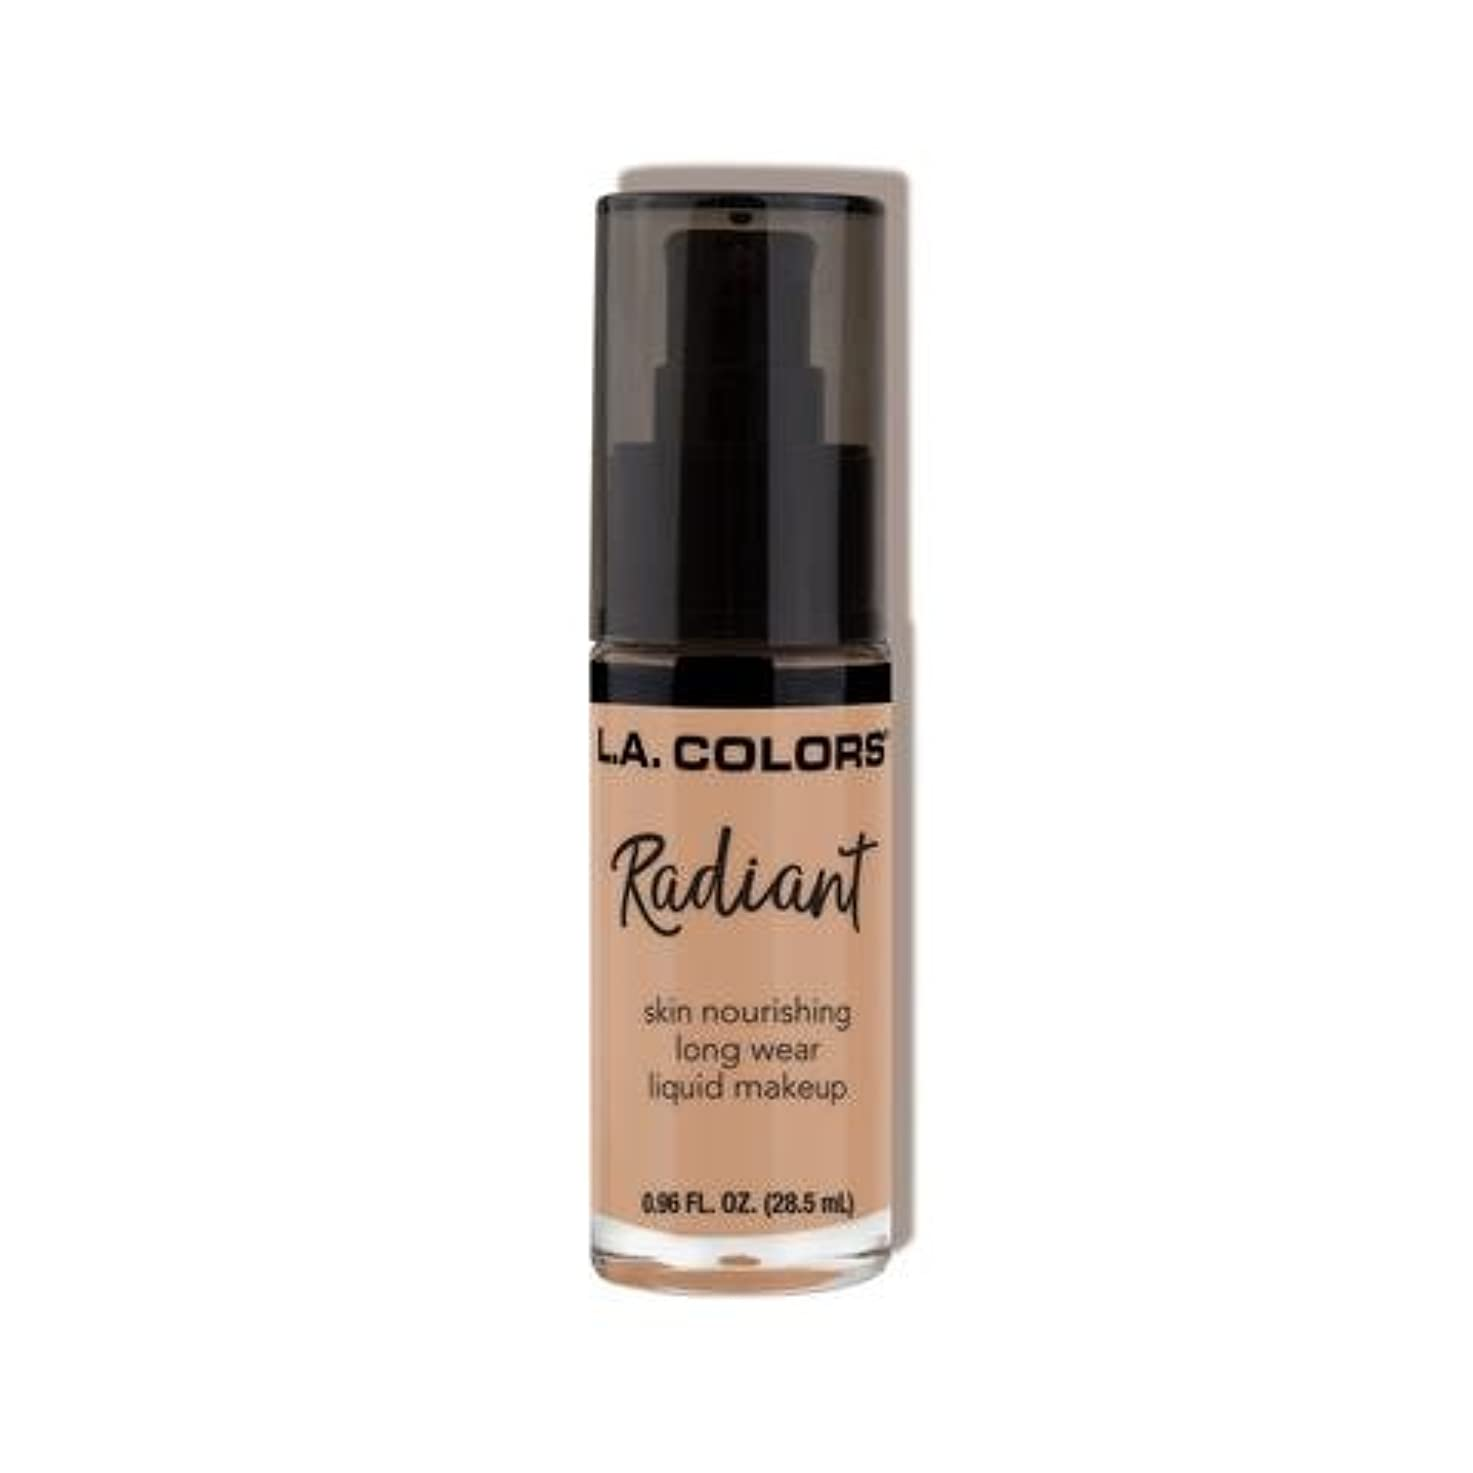 武器変える勢い(3 Pack) L.A. COLORS Radiant Liquid Makeup - Medium Tan (並行輸入品)